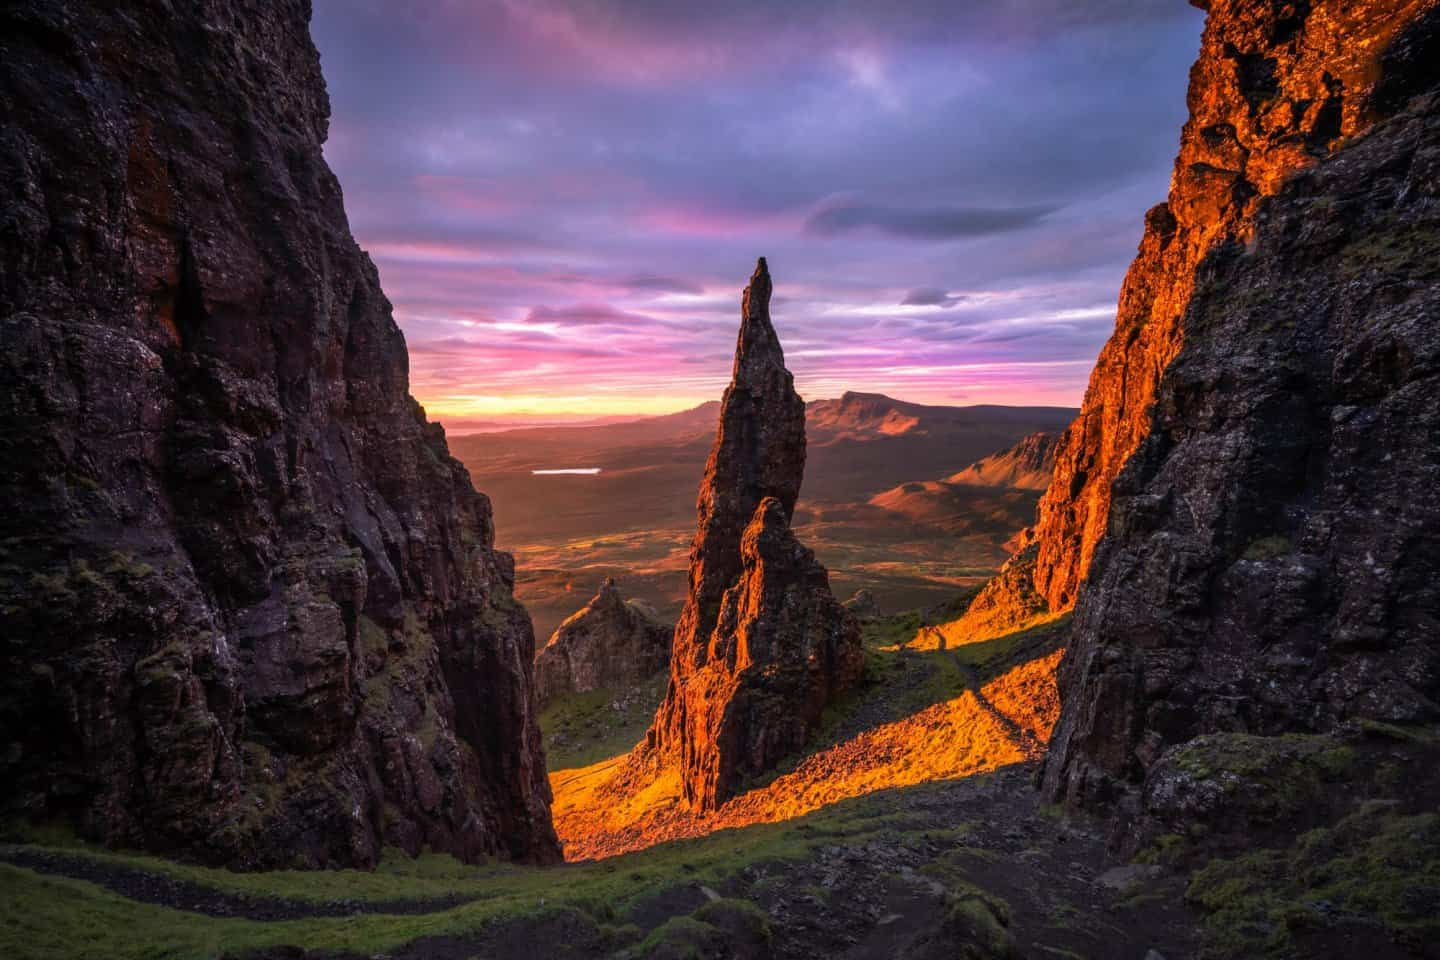 Day 2 on your Isle of Skye 2 day tour from Edinburgh includes a stop at the incredible Needle at Quiraing.